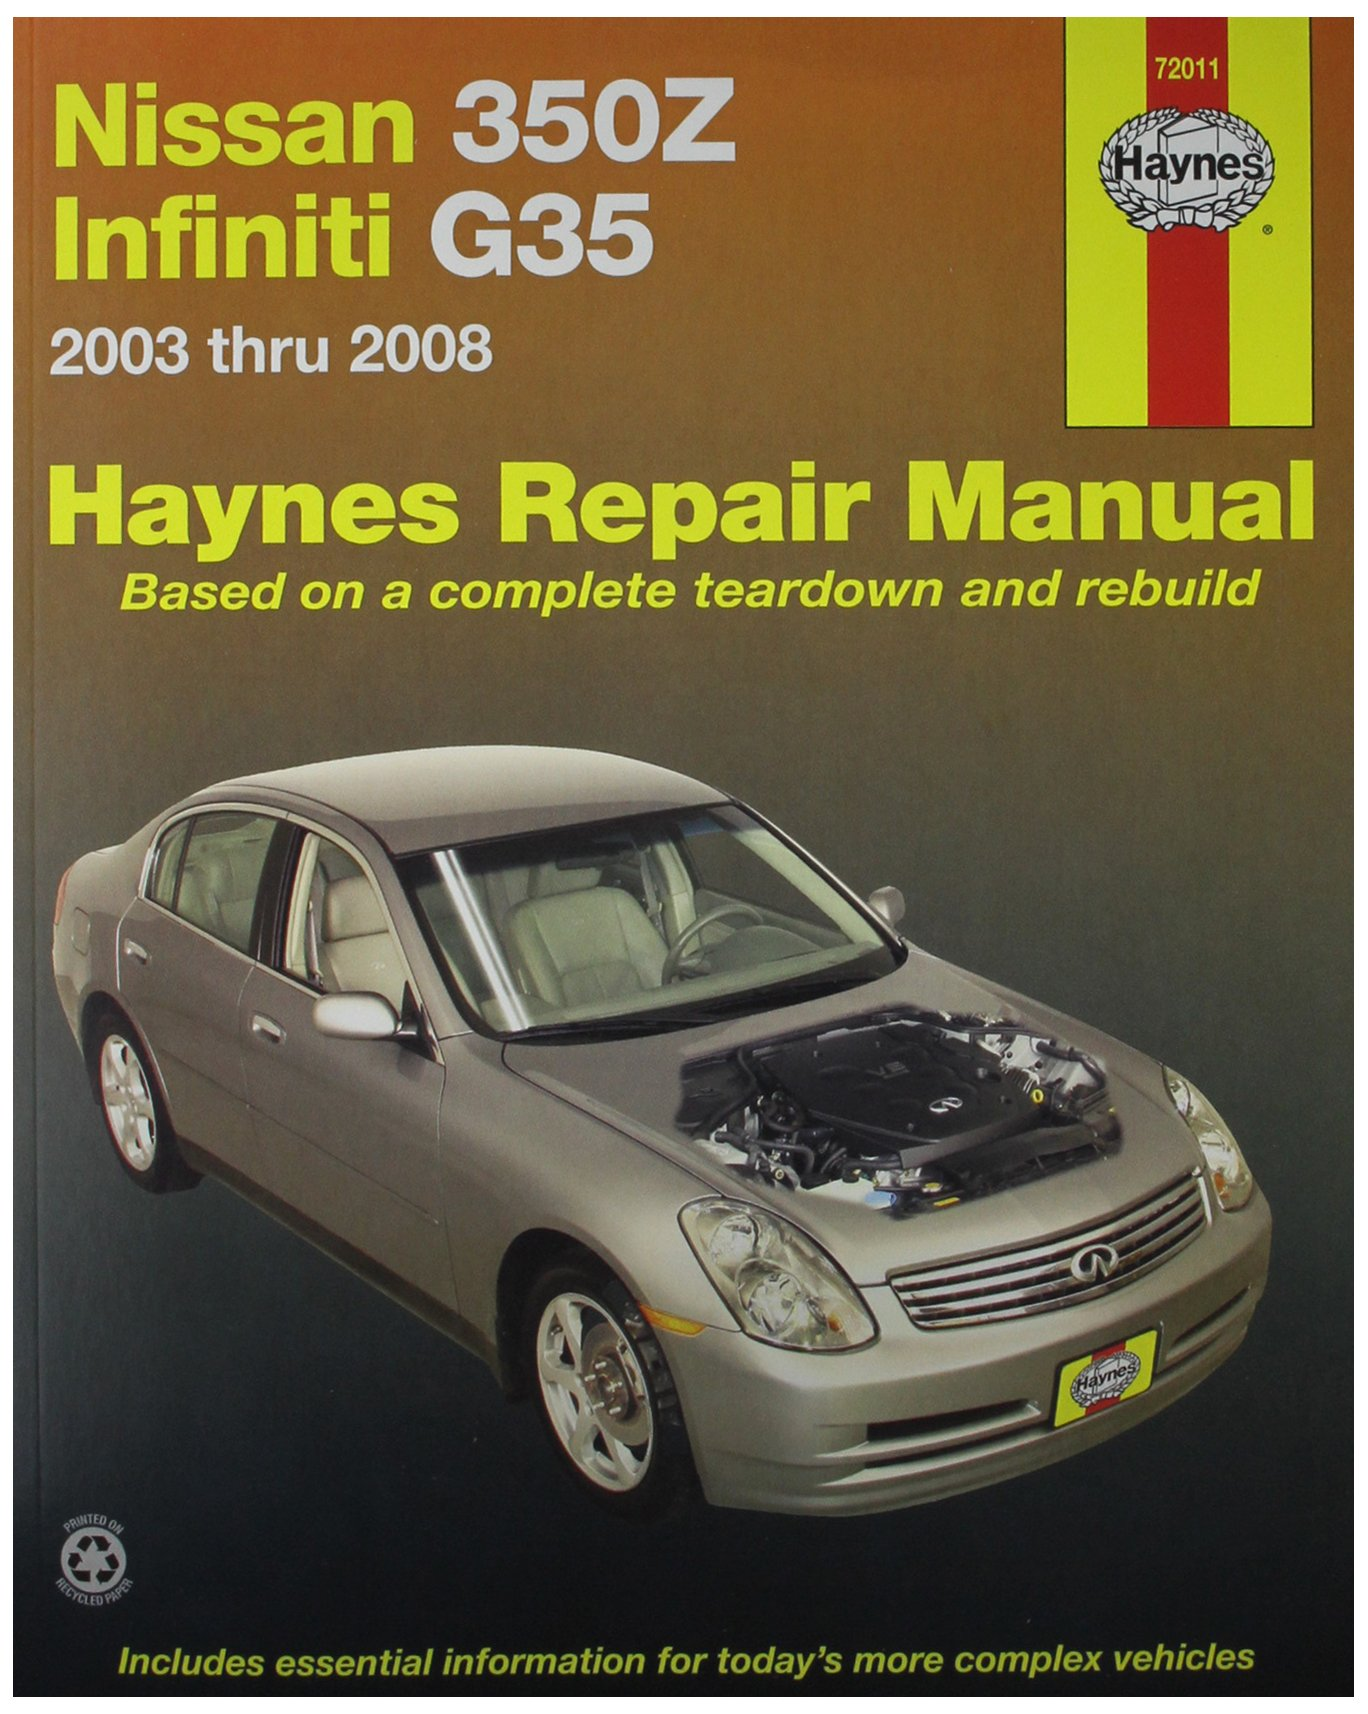 Haynes Automotive Repair Manual for Nissan 350Z and Infiniti G35, '03 thru  '08 (72011): 0038345720116: Amazon.com: Books